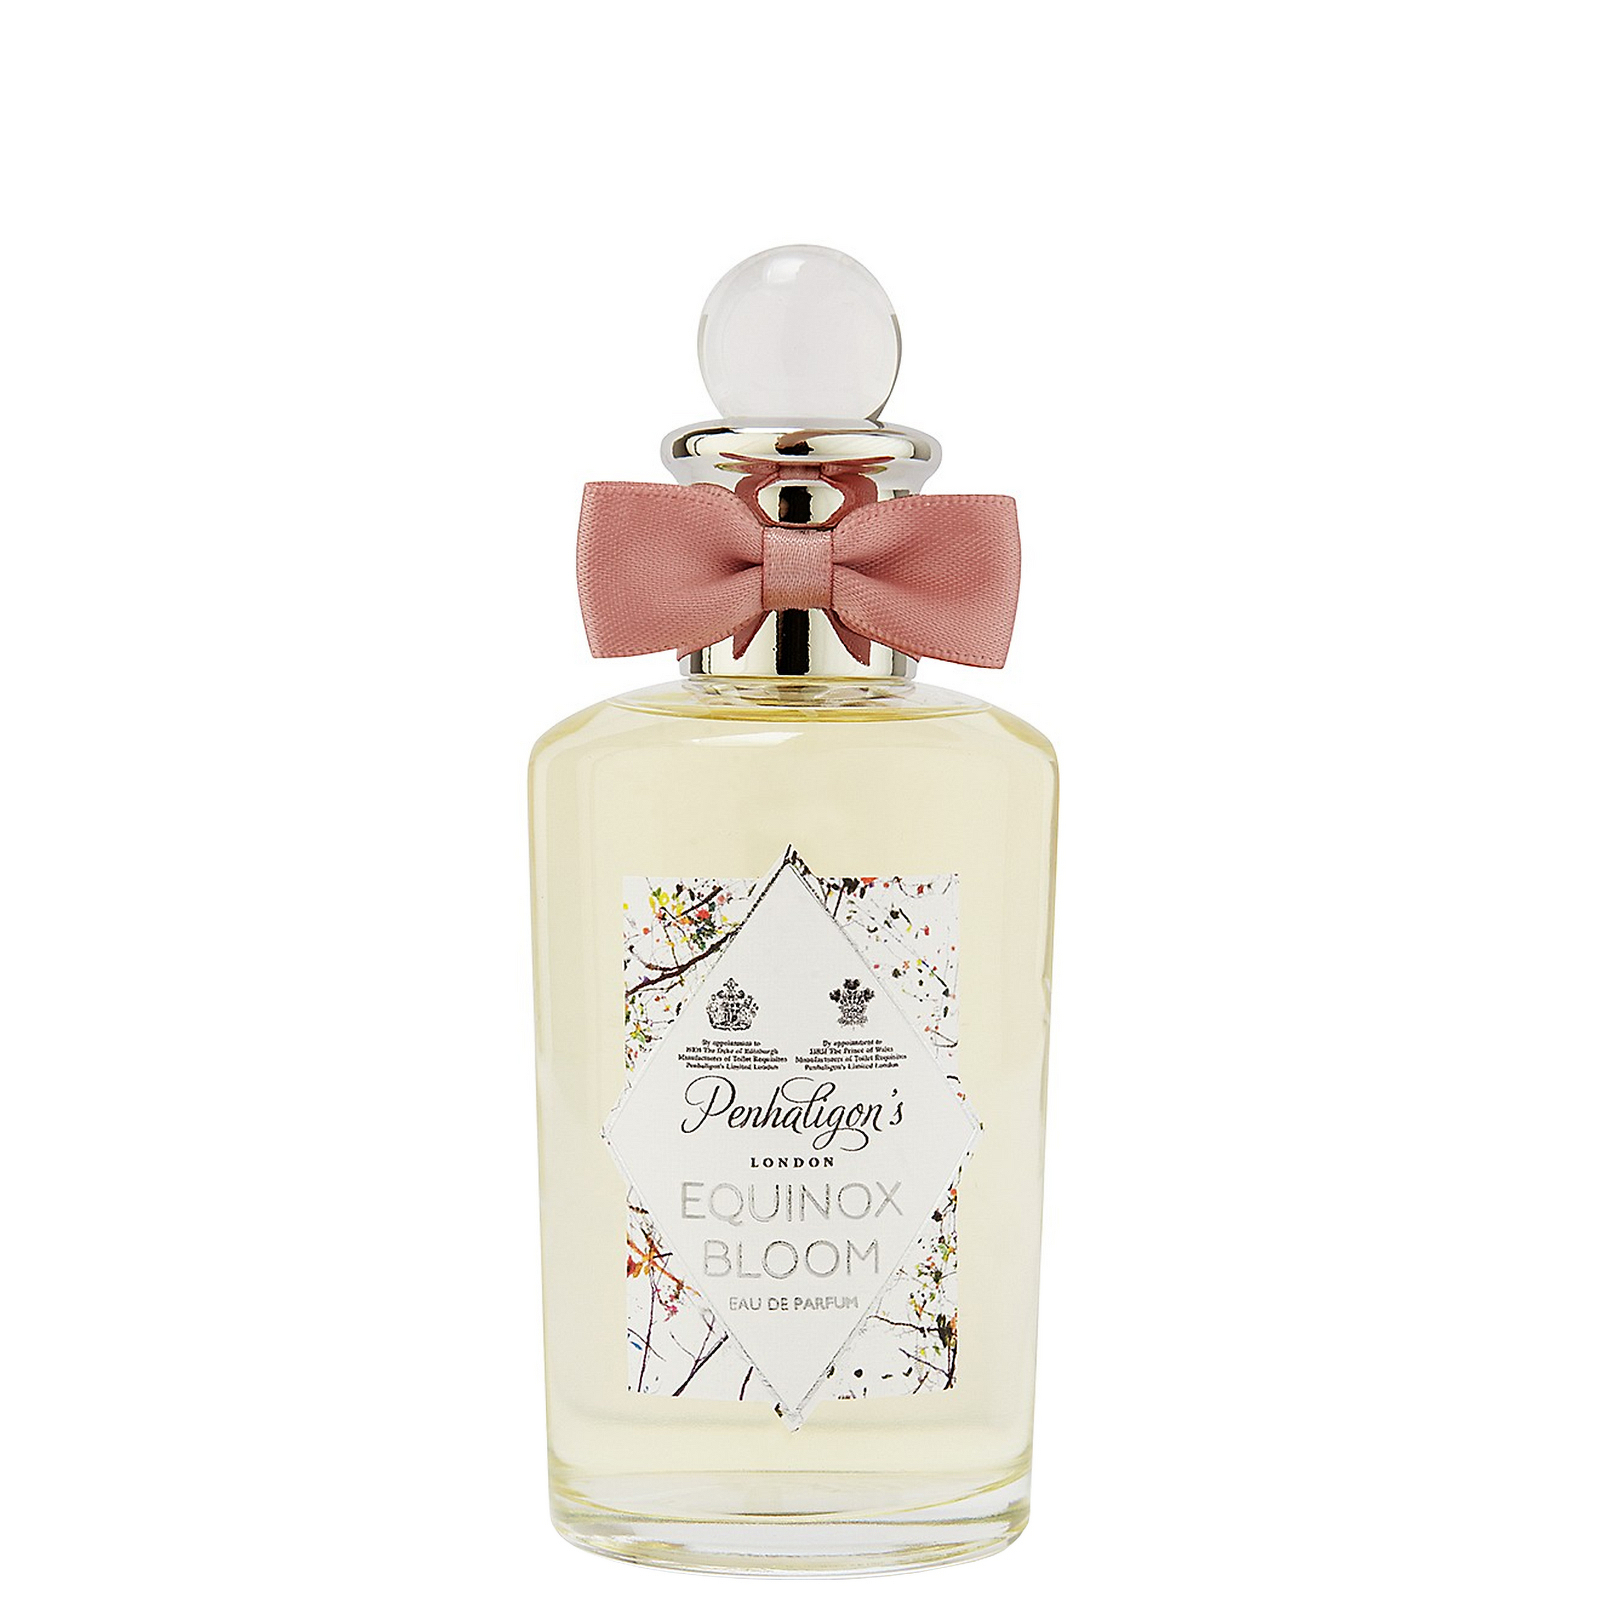 Penhaligon's Equinox Bloom Eau de Parfum Spray 50ml / 1.7 fl.oz.